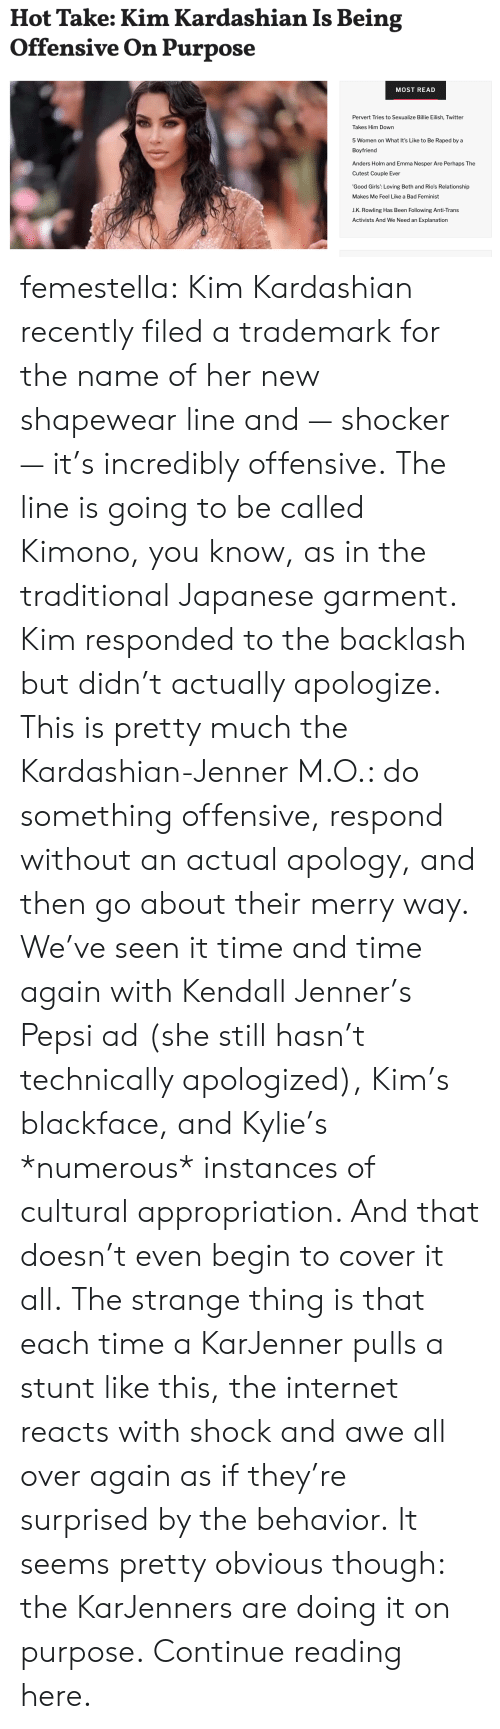 Bad, Girls, and Internet: Hot Take: Kim Kardashian Is Being  Offensive On Purpose  MOST READ  Pervert Tries to Sexualize Billie Eilish, Twitter  Takes Him Down  5 Women on What It's Like to Be Raped by a  Boyfriend  Anders Holm and Emma Nesper Are Perhaps The  Cutest Couple Ever  'Good Girls': Loving Beth and Rio's Relationship  Makes Me Feel Like a Bad Feminist  J.K. Rowling Has Been Following Anti-Trans  Activists And We Need an Explanation femestella: Kim Kardashian recently filed a trademark for the name of her new shapewear line and — shocker — it's incredibly offensive. The line is going to be called Kimono, you know, as in the traditional Japanese garment.  Kim responded to the backlash but didn't actually apologize. This is pretty much the Kardashian-Jenner M.O.: do something offensive, respond without an actual apology, and then go about their merry way. We've seen it time and time again with Kendall Jenner's Pepsi ad (she still hasn't technically apologized), Kim's blackface, and Kylie's *numerous* instances of cultural appropriation. And that doesn't even begin to cover it all. The strange thing is that each time a KarJenner pulls a stunt like this, the internet reacts with shock and awe all over again as if they're surprised by the behavior. It seems pretty obvious though: the KarJenners are doing it on purpose. Continue reading here.